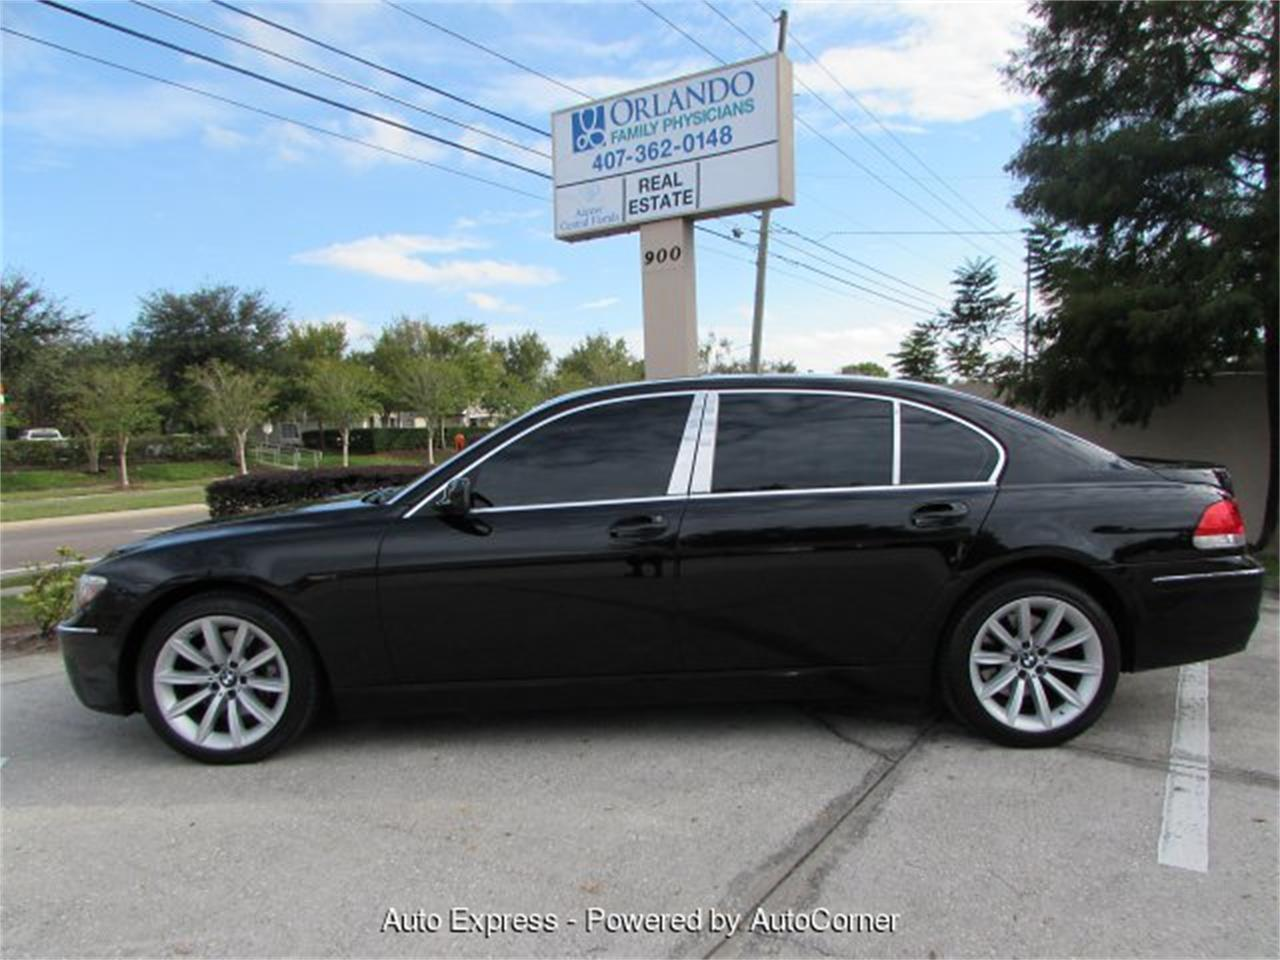 2007 BMW 7 Series for sale in Orlando, FL – photo 5